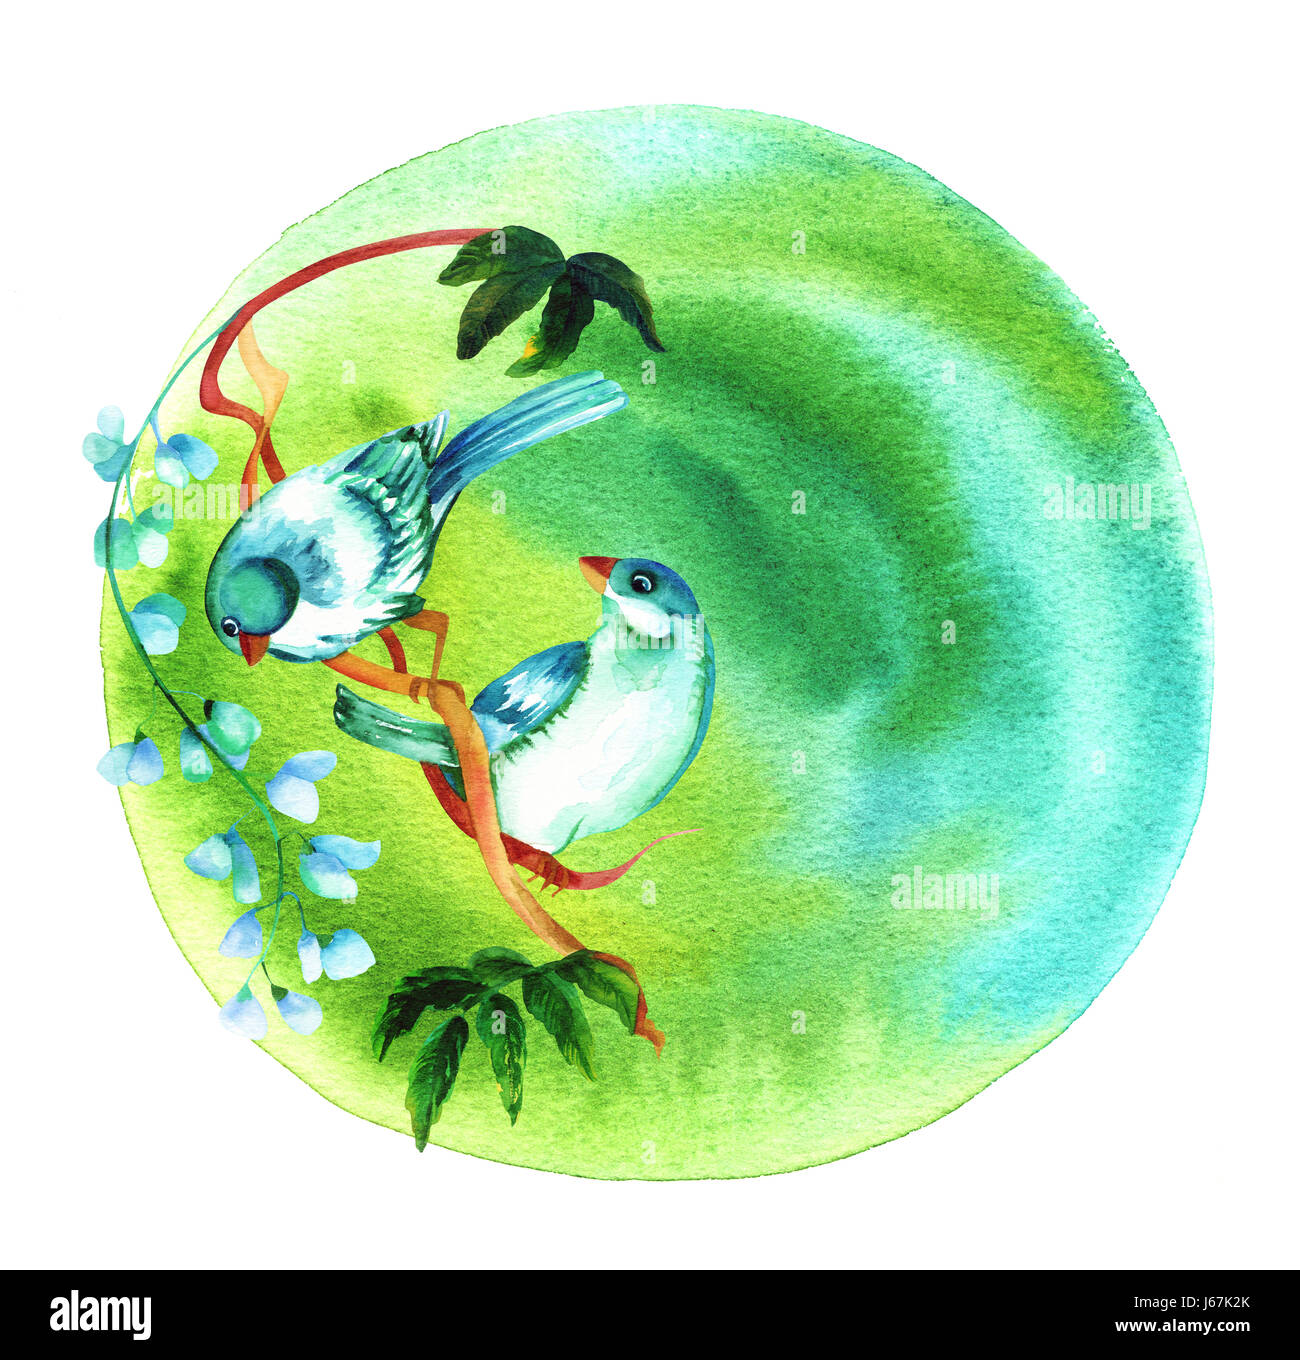 A couple of vibrant watercolour birds on a circular green abstract background texture, with a place for text, a - Stock Image